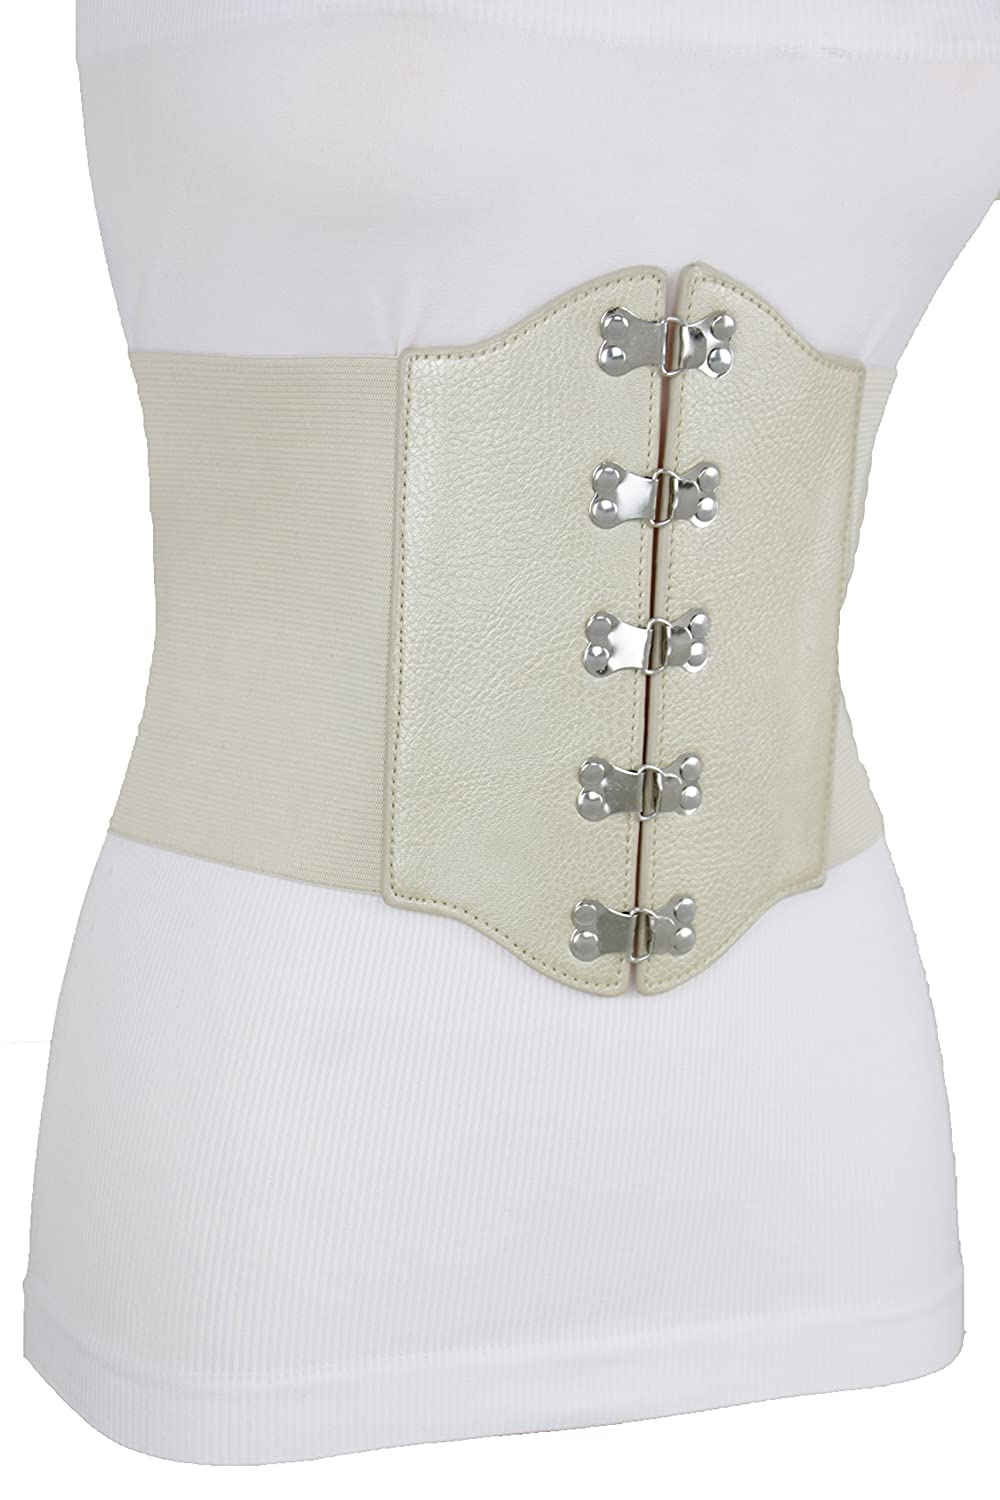 90b927201d TFJ Women Belt Hip Light Gold Corset Silver Buckles Metallic Beige Bling S M  at Amazon Women s Clothing store